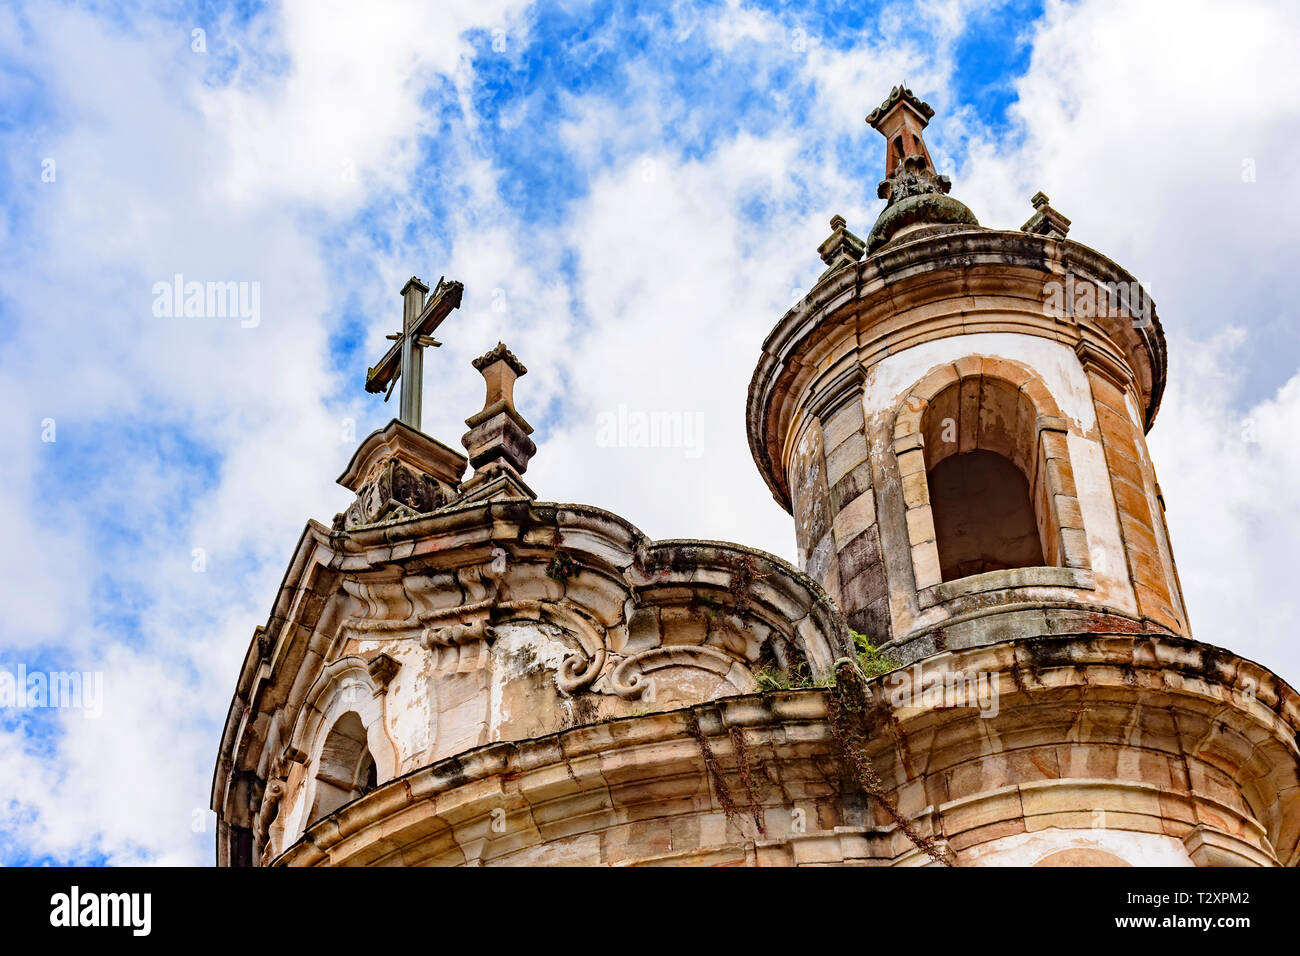 Old catholic church tower, ornaments and crucifix of the 18th century located in the center of the famous and historical city of Ouro Preto in Minas G - Stock Image